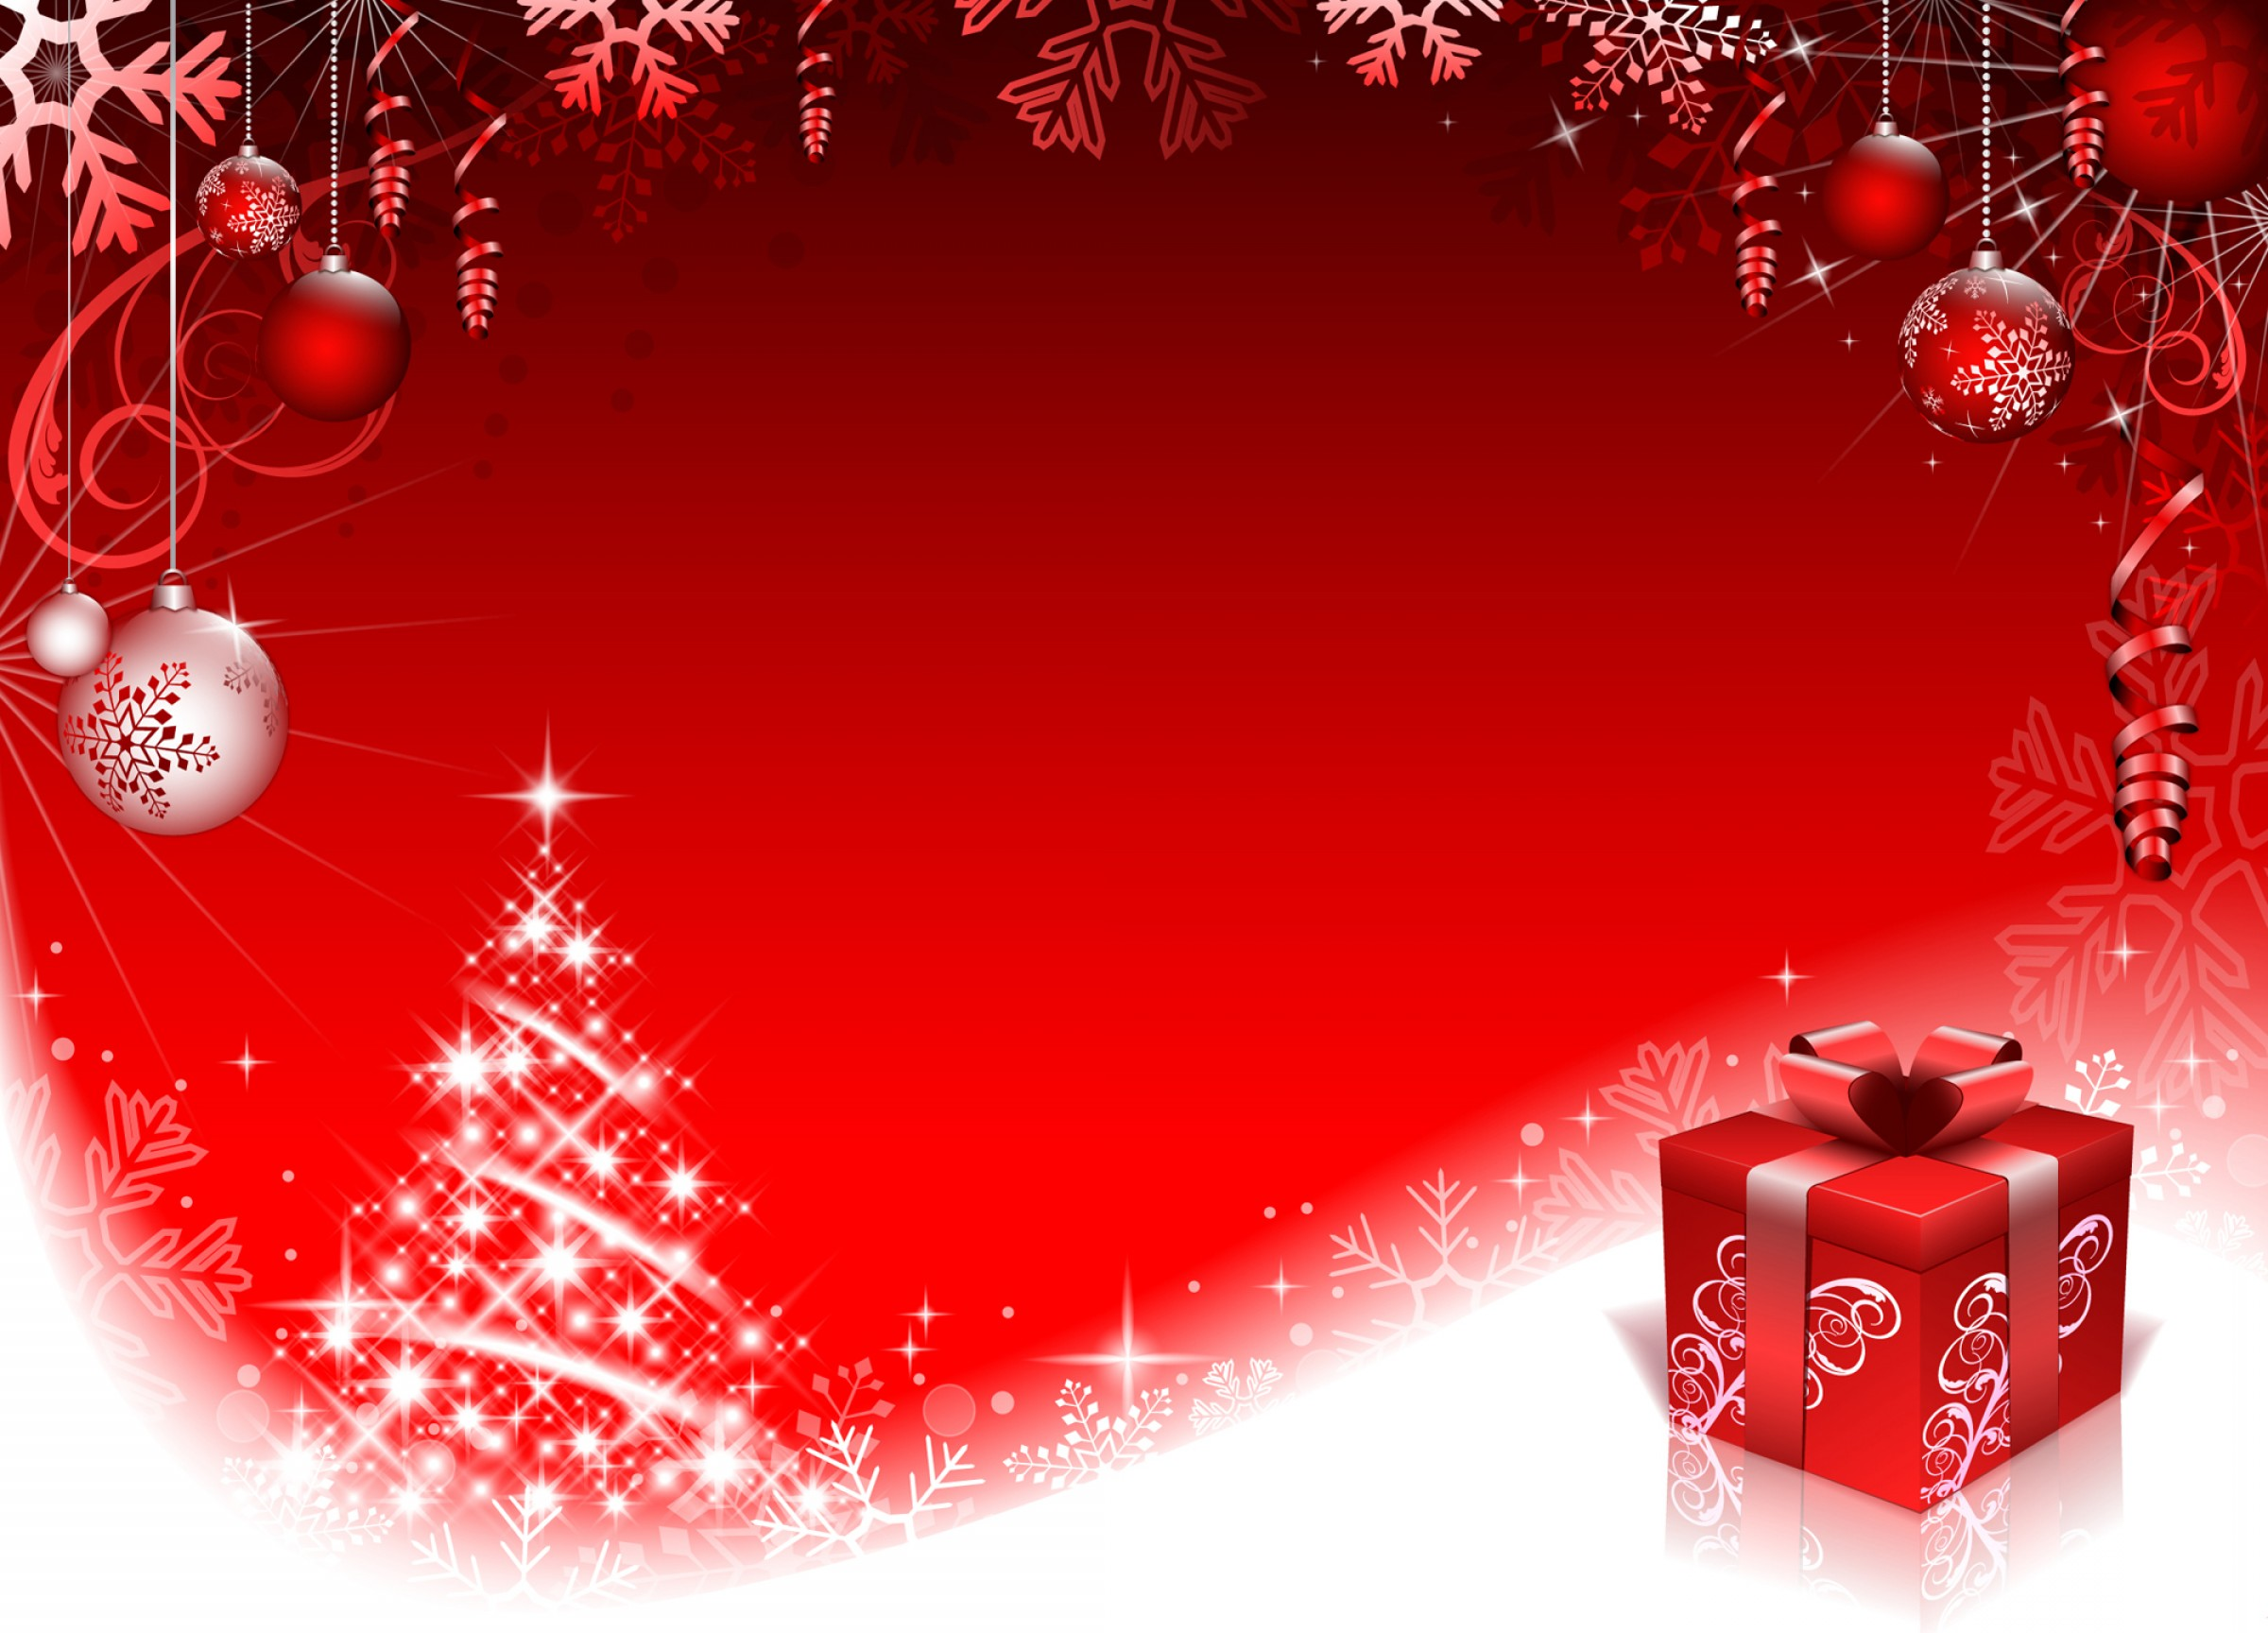 Abstract Vector Backgrounds For Photoshop: Red Style Christmas Background Art Vector